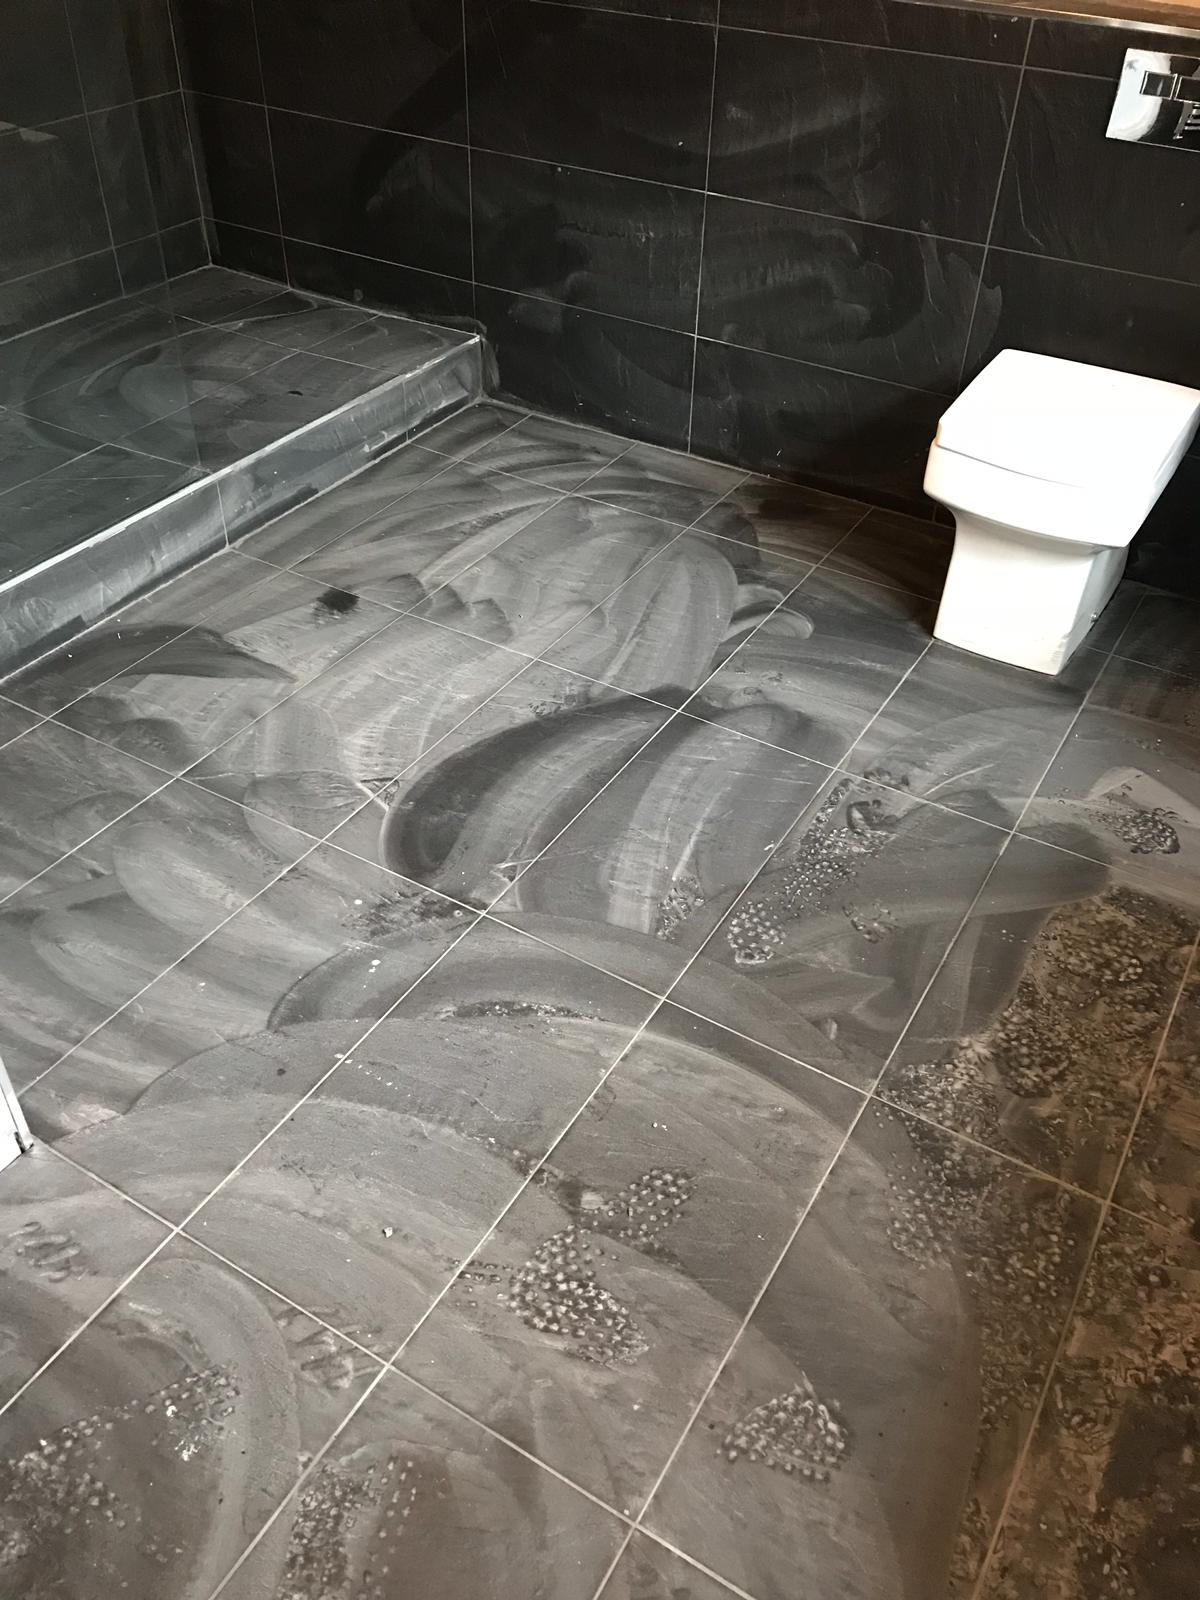 Amazing Removing Grout Haze From Black Porcelain Bathroom Tiles Home Interior And Landscaping Palasignezvosmurscom